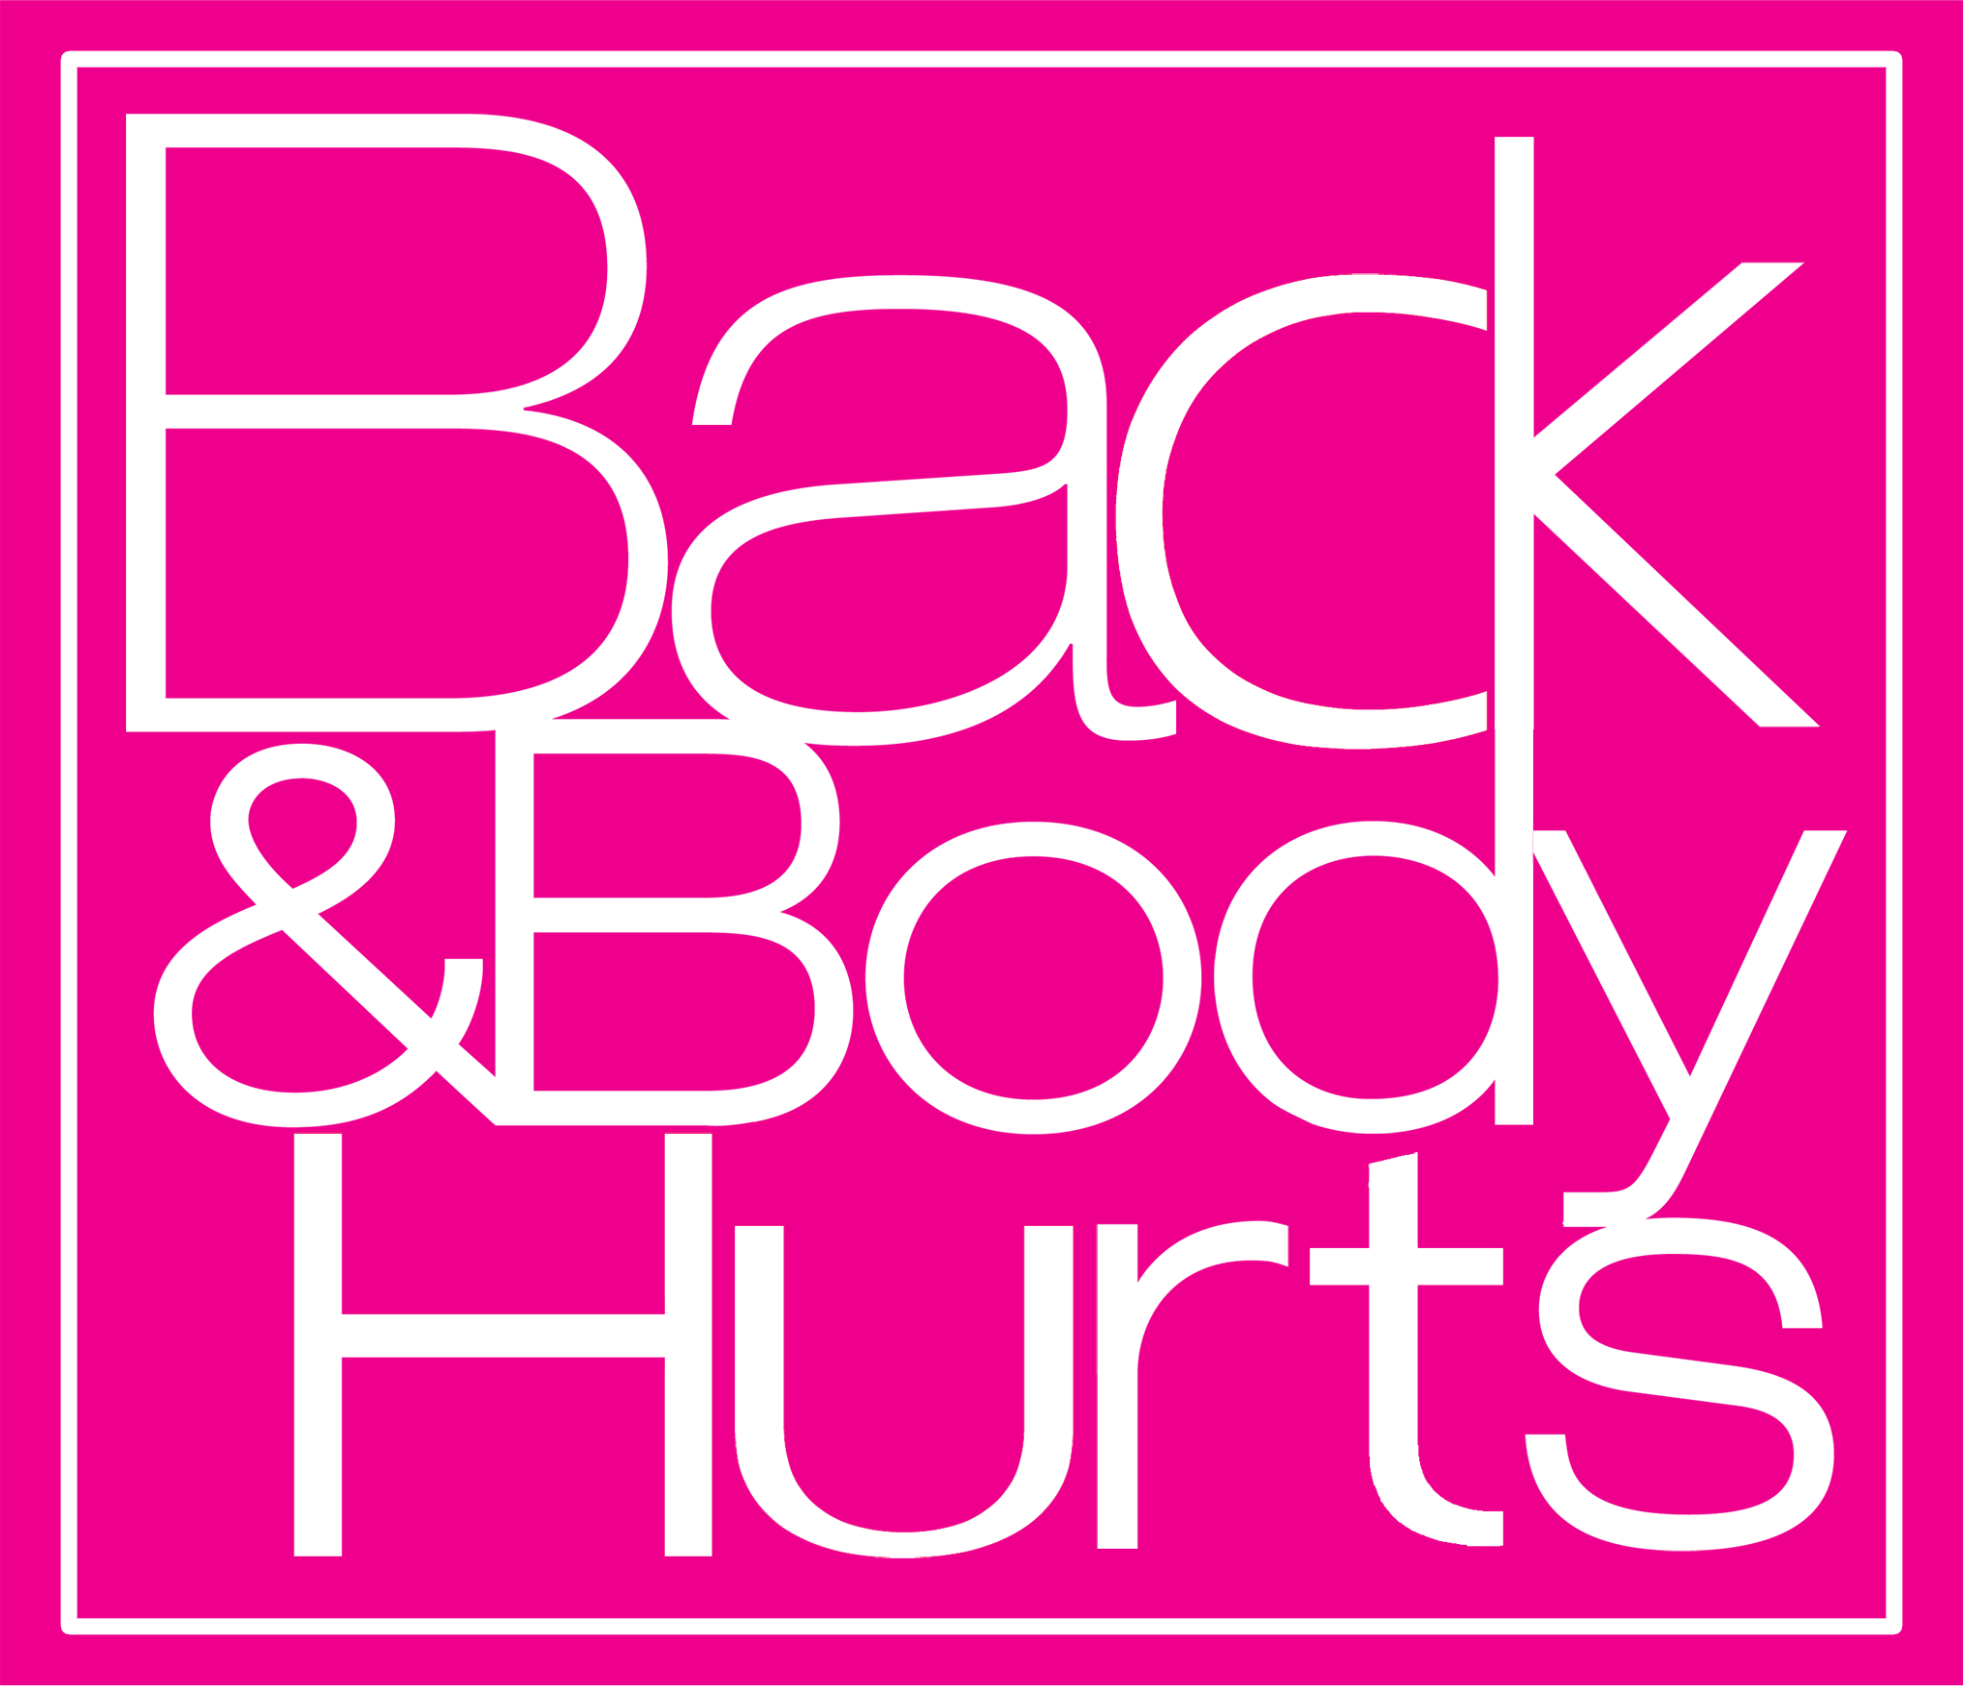 Back And Body Hurts